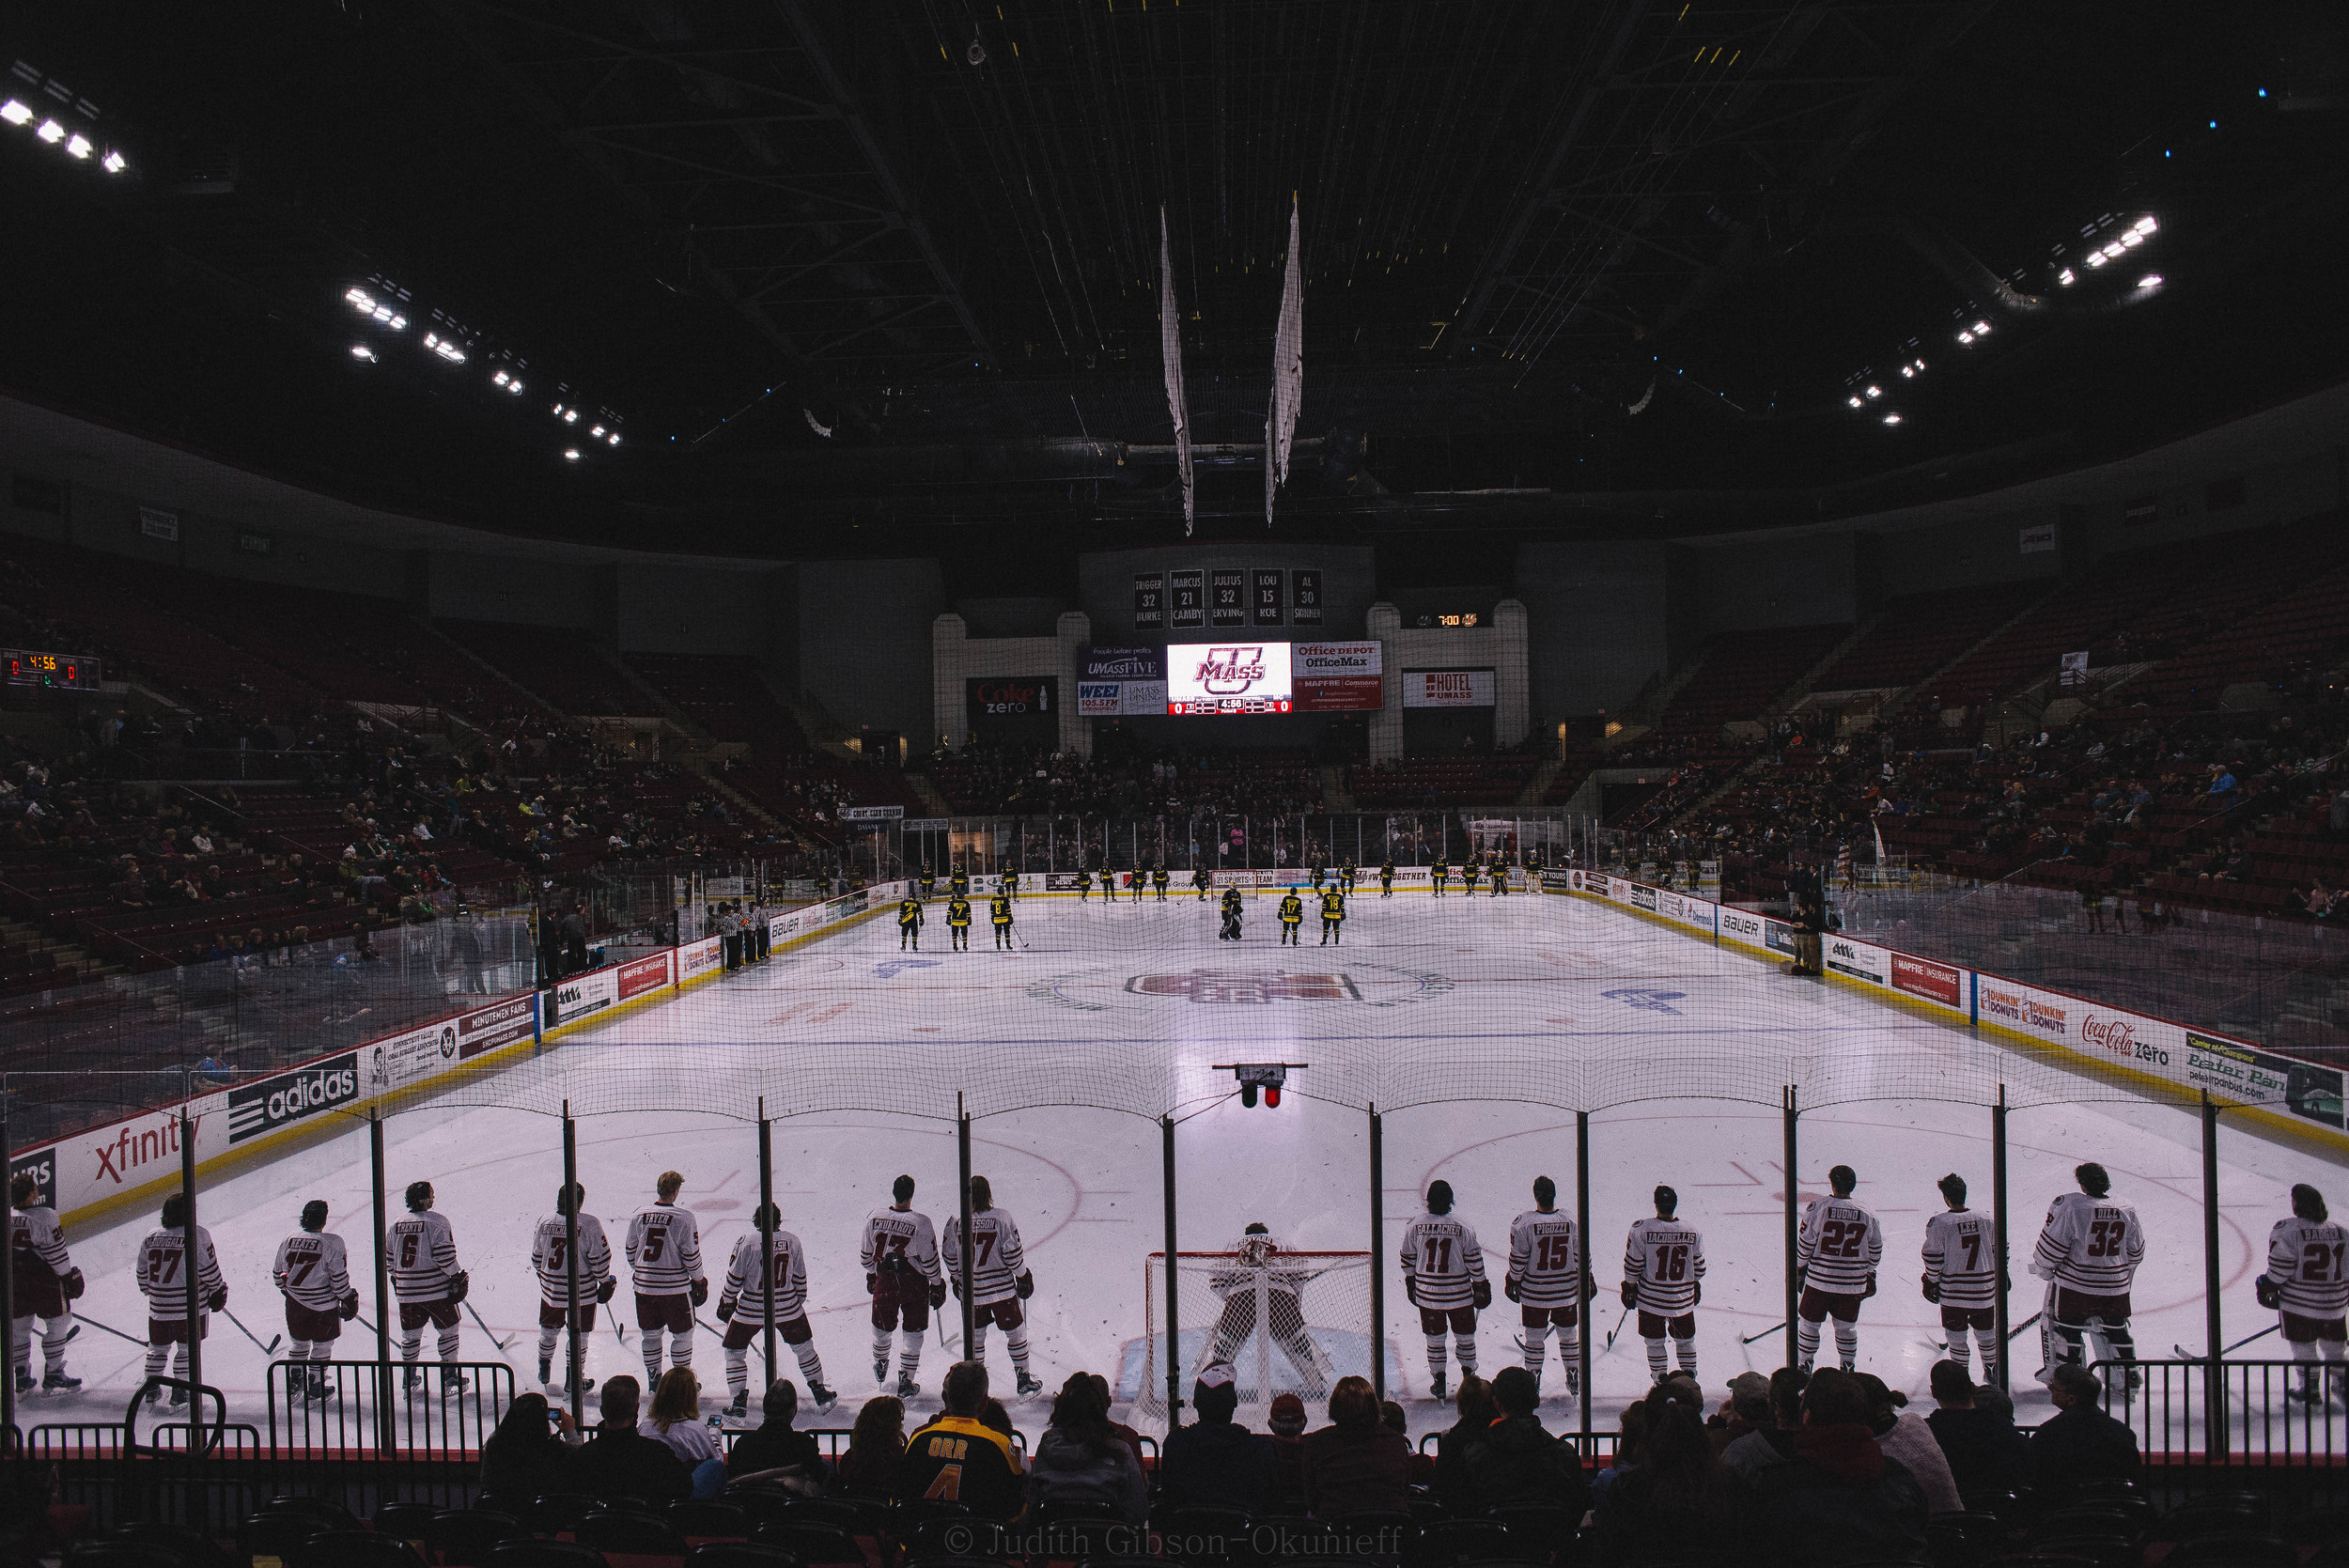 UMass Men's Ice Hockey lost to Merrimack 4-2 at the Mullins Center Friday night.